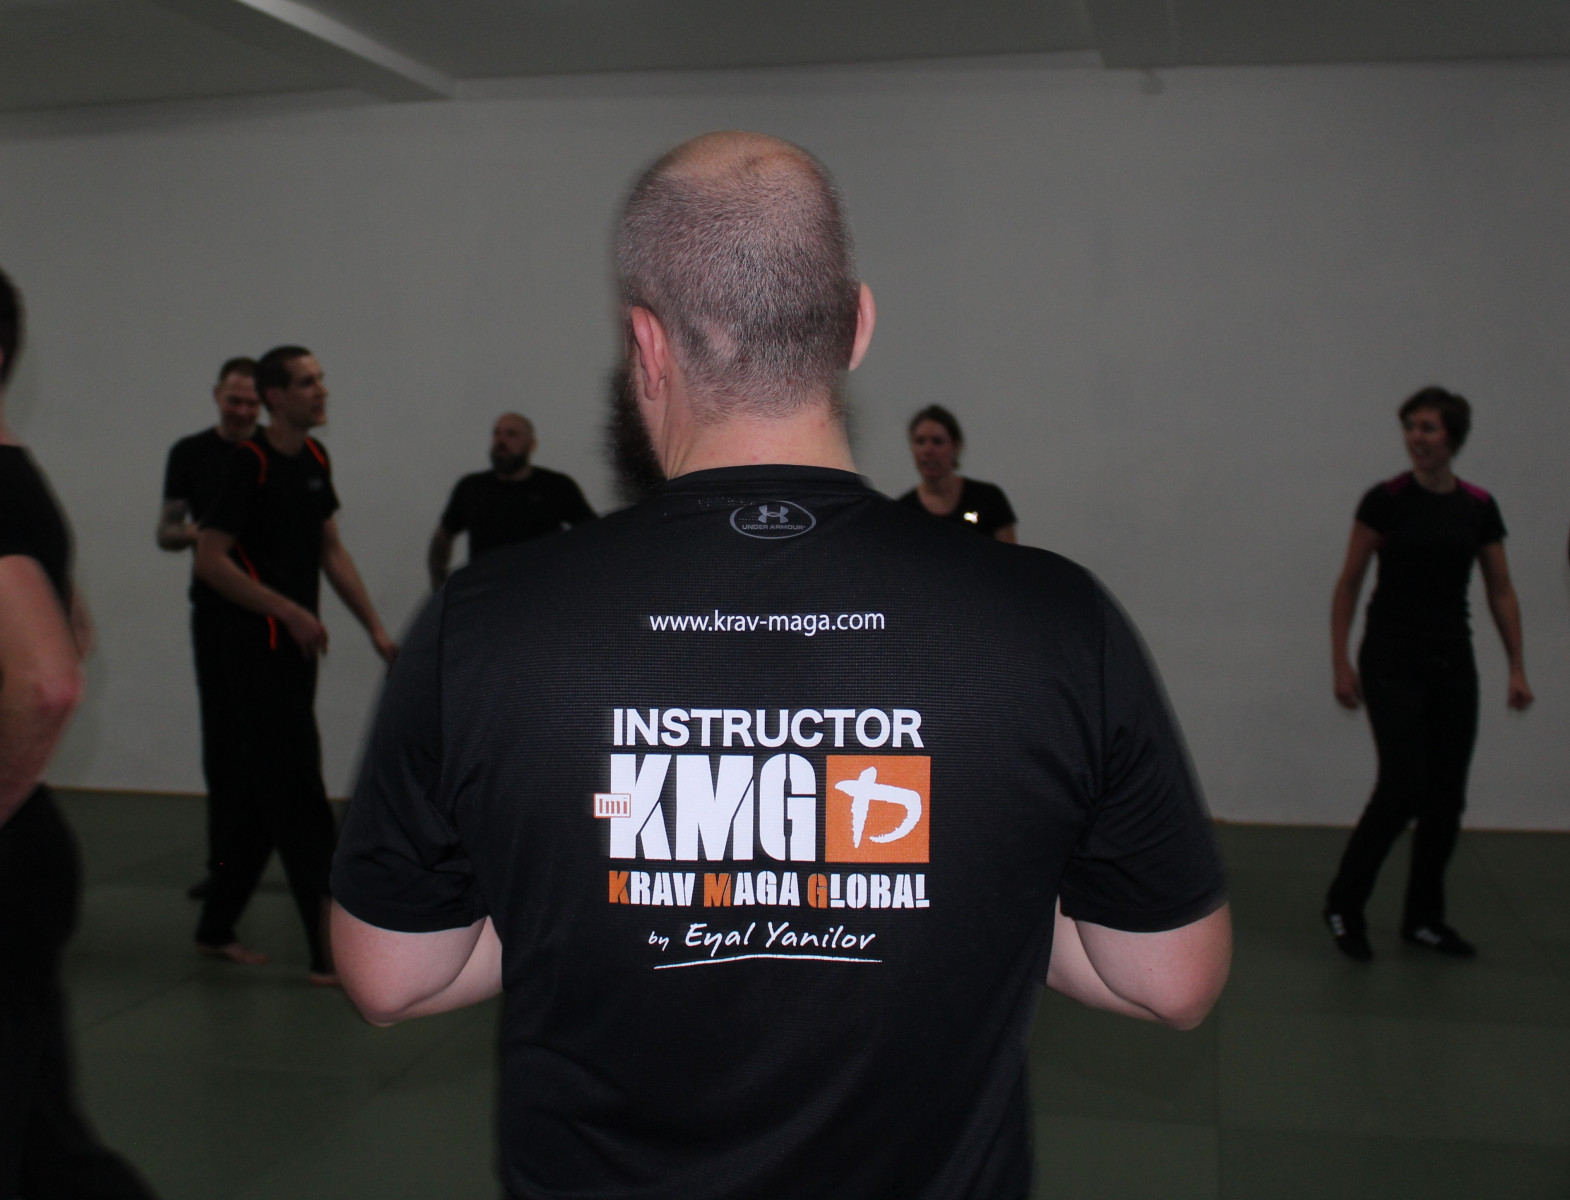 The Instructor